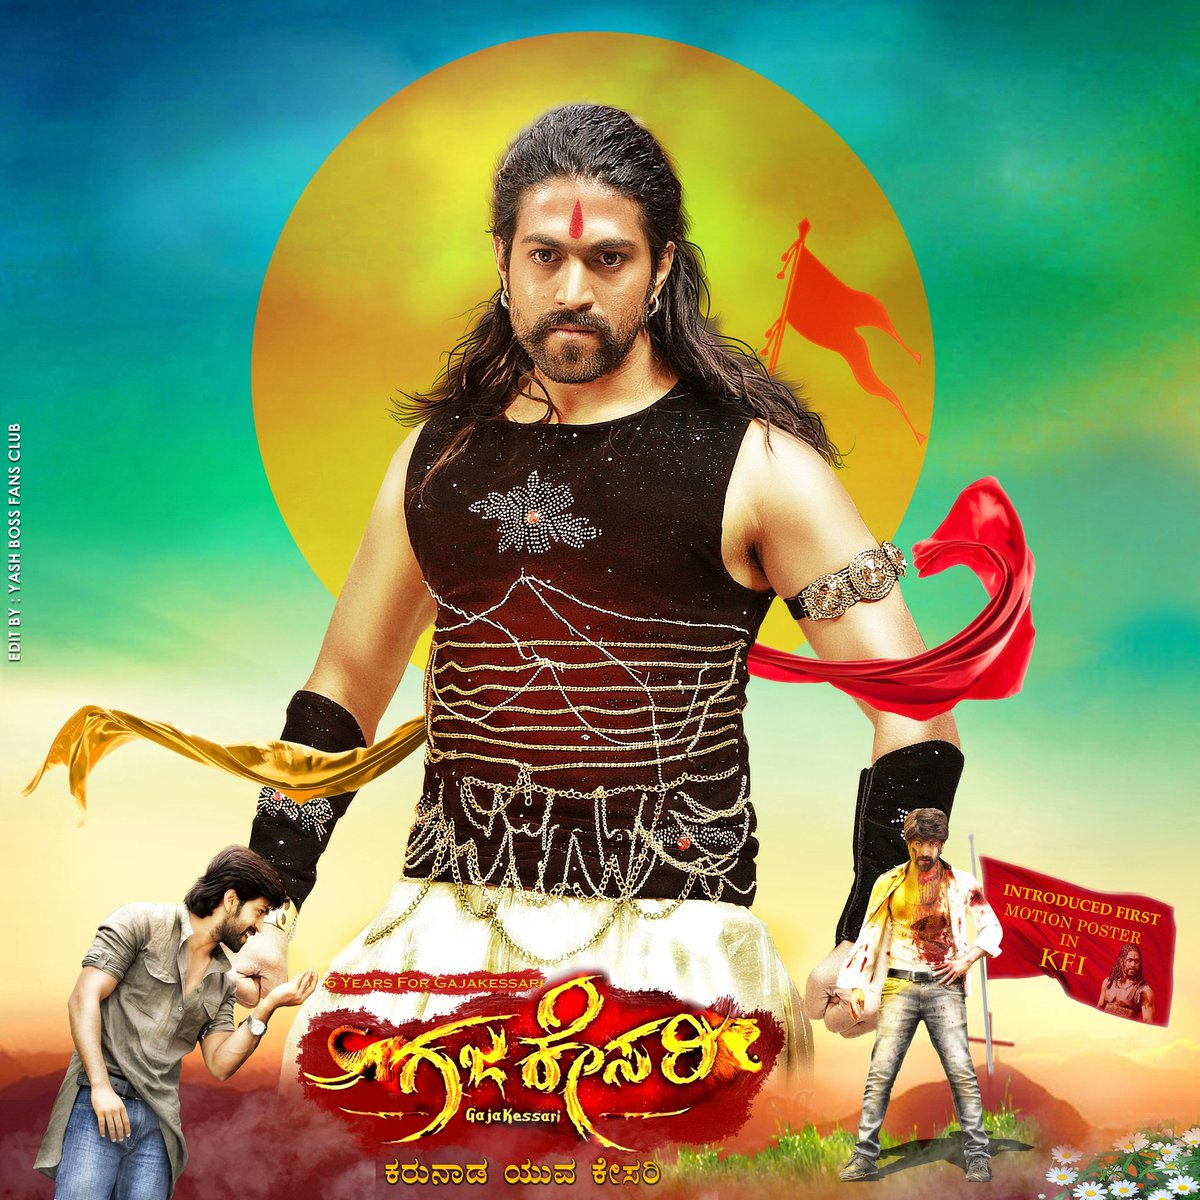 6 Years For Blockbuster Gajakesari🔥  The Movie Which Broke Each And Every Previous Records In Box Office And Becomes Top One At That Time😎🔥  @TheNameIsYash @nimmaamulya @krisshdop   #KGFChapter2 https://t.co/NPkQd671x3